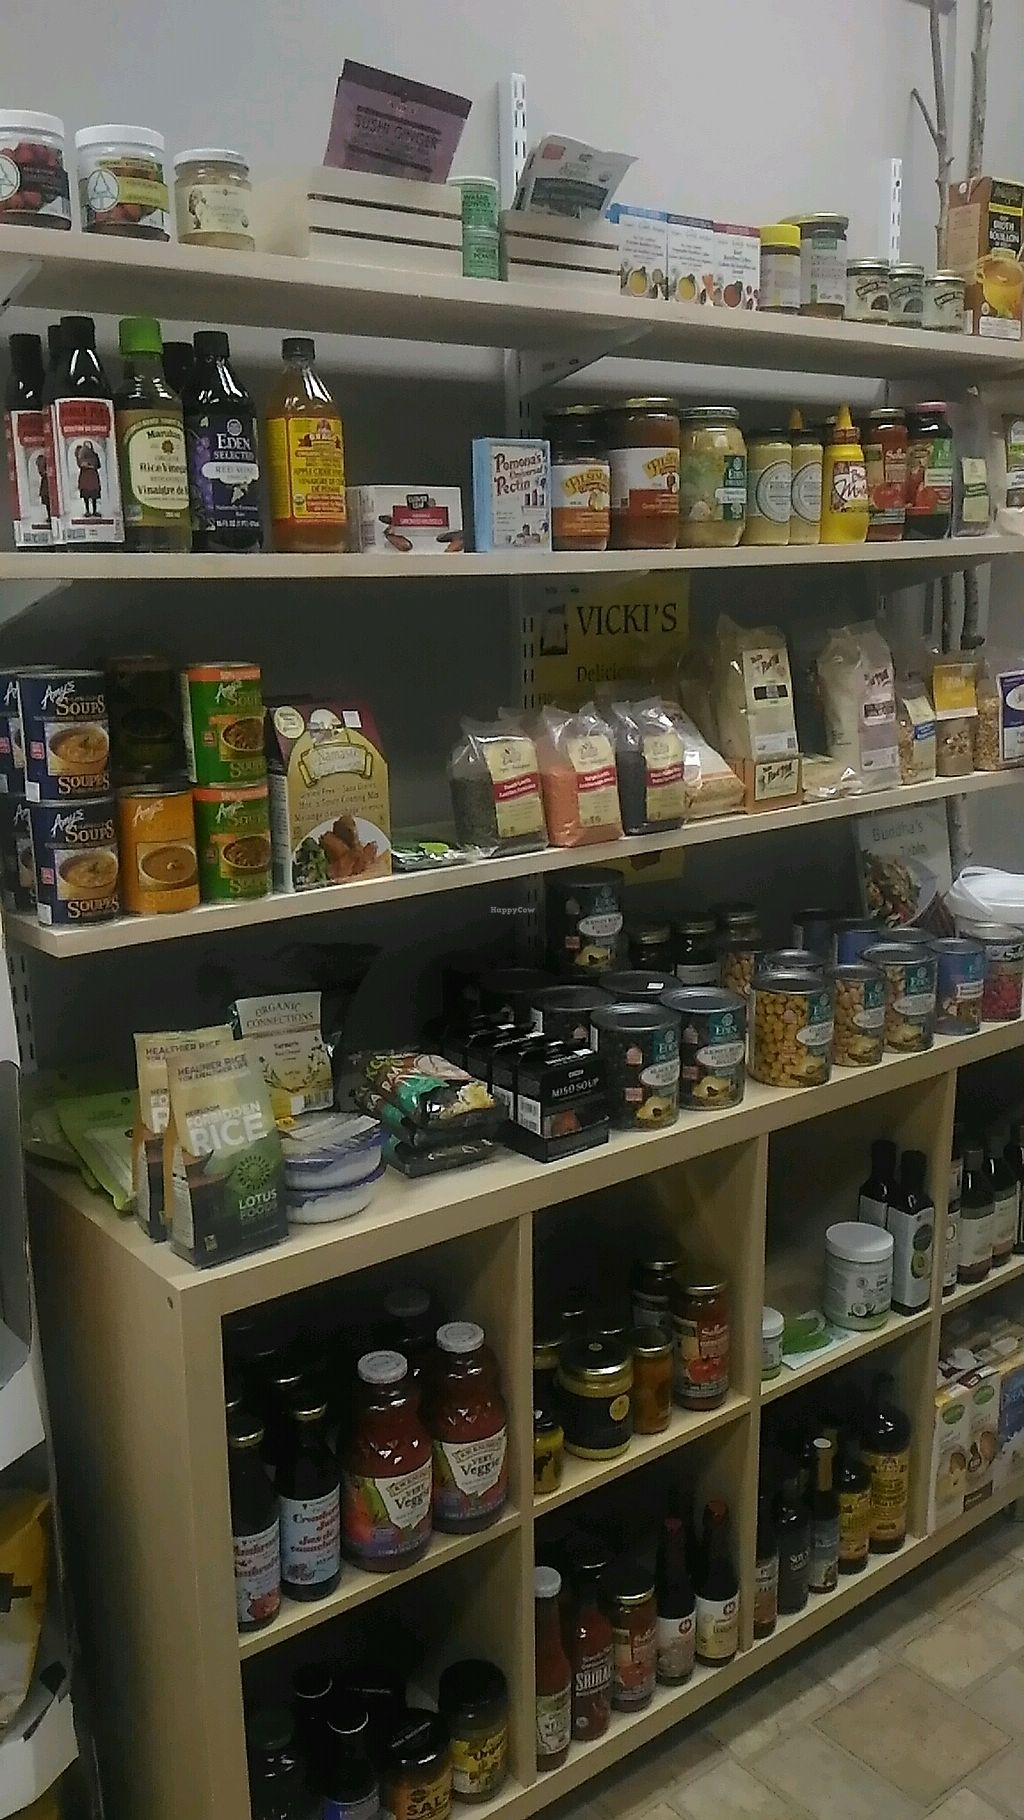 """Photo of Ohealthy Market - Portland St  by <a href=""""/members/profile/QuothTheRaven"""">QuothTheRaven</a> <br/>grocery <br/> September 8, 2017  - <a href='/contact/abuse/image/72063/301916'>Report</a>"""